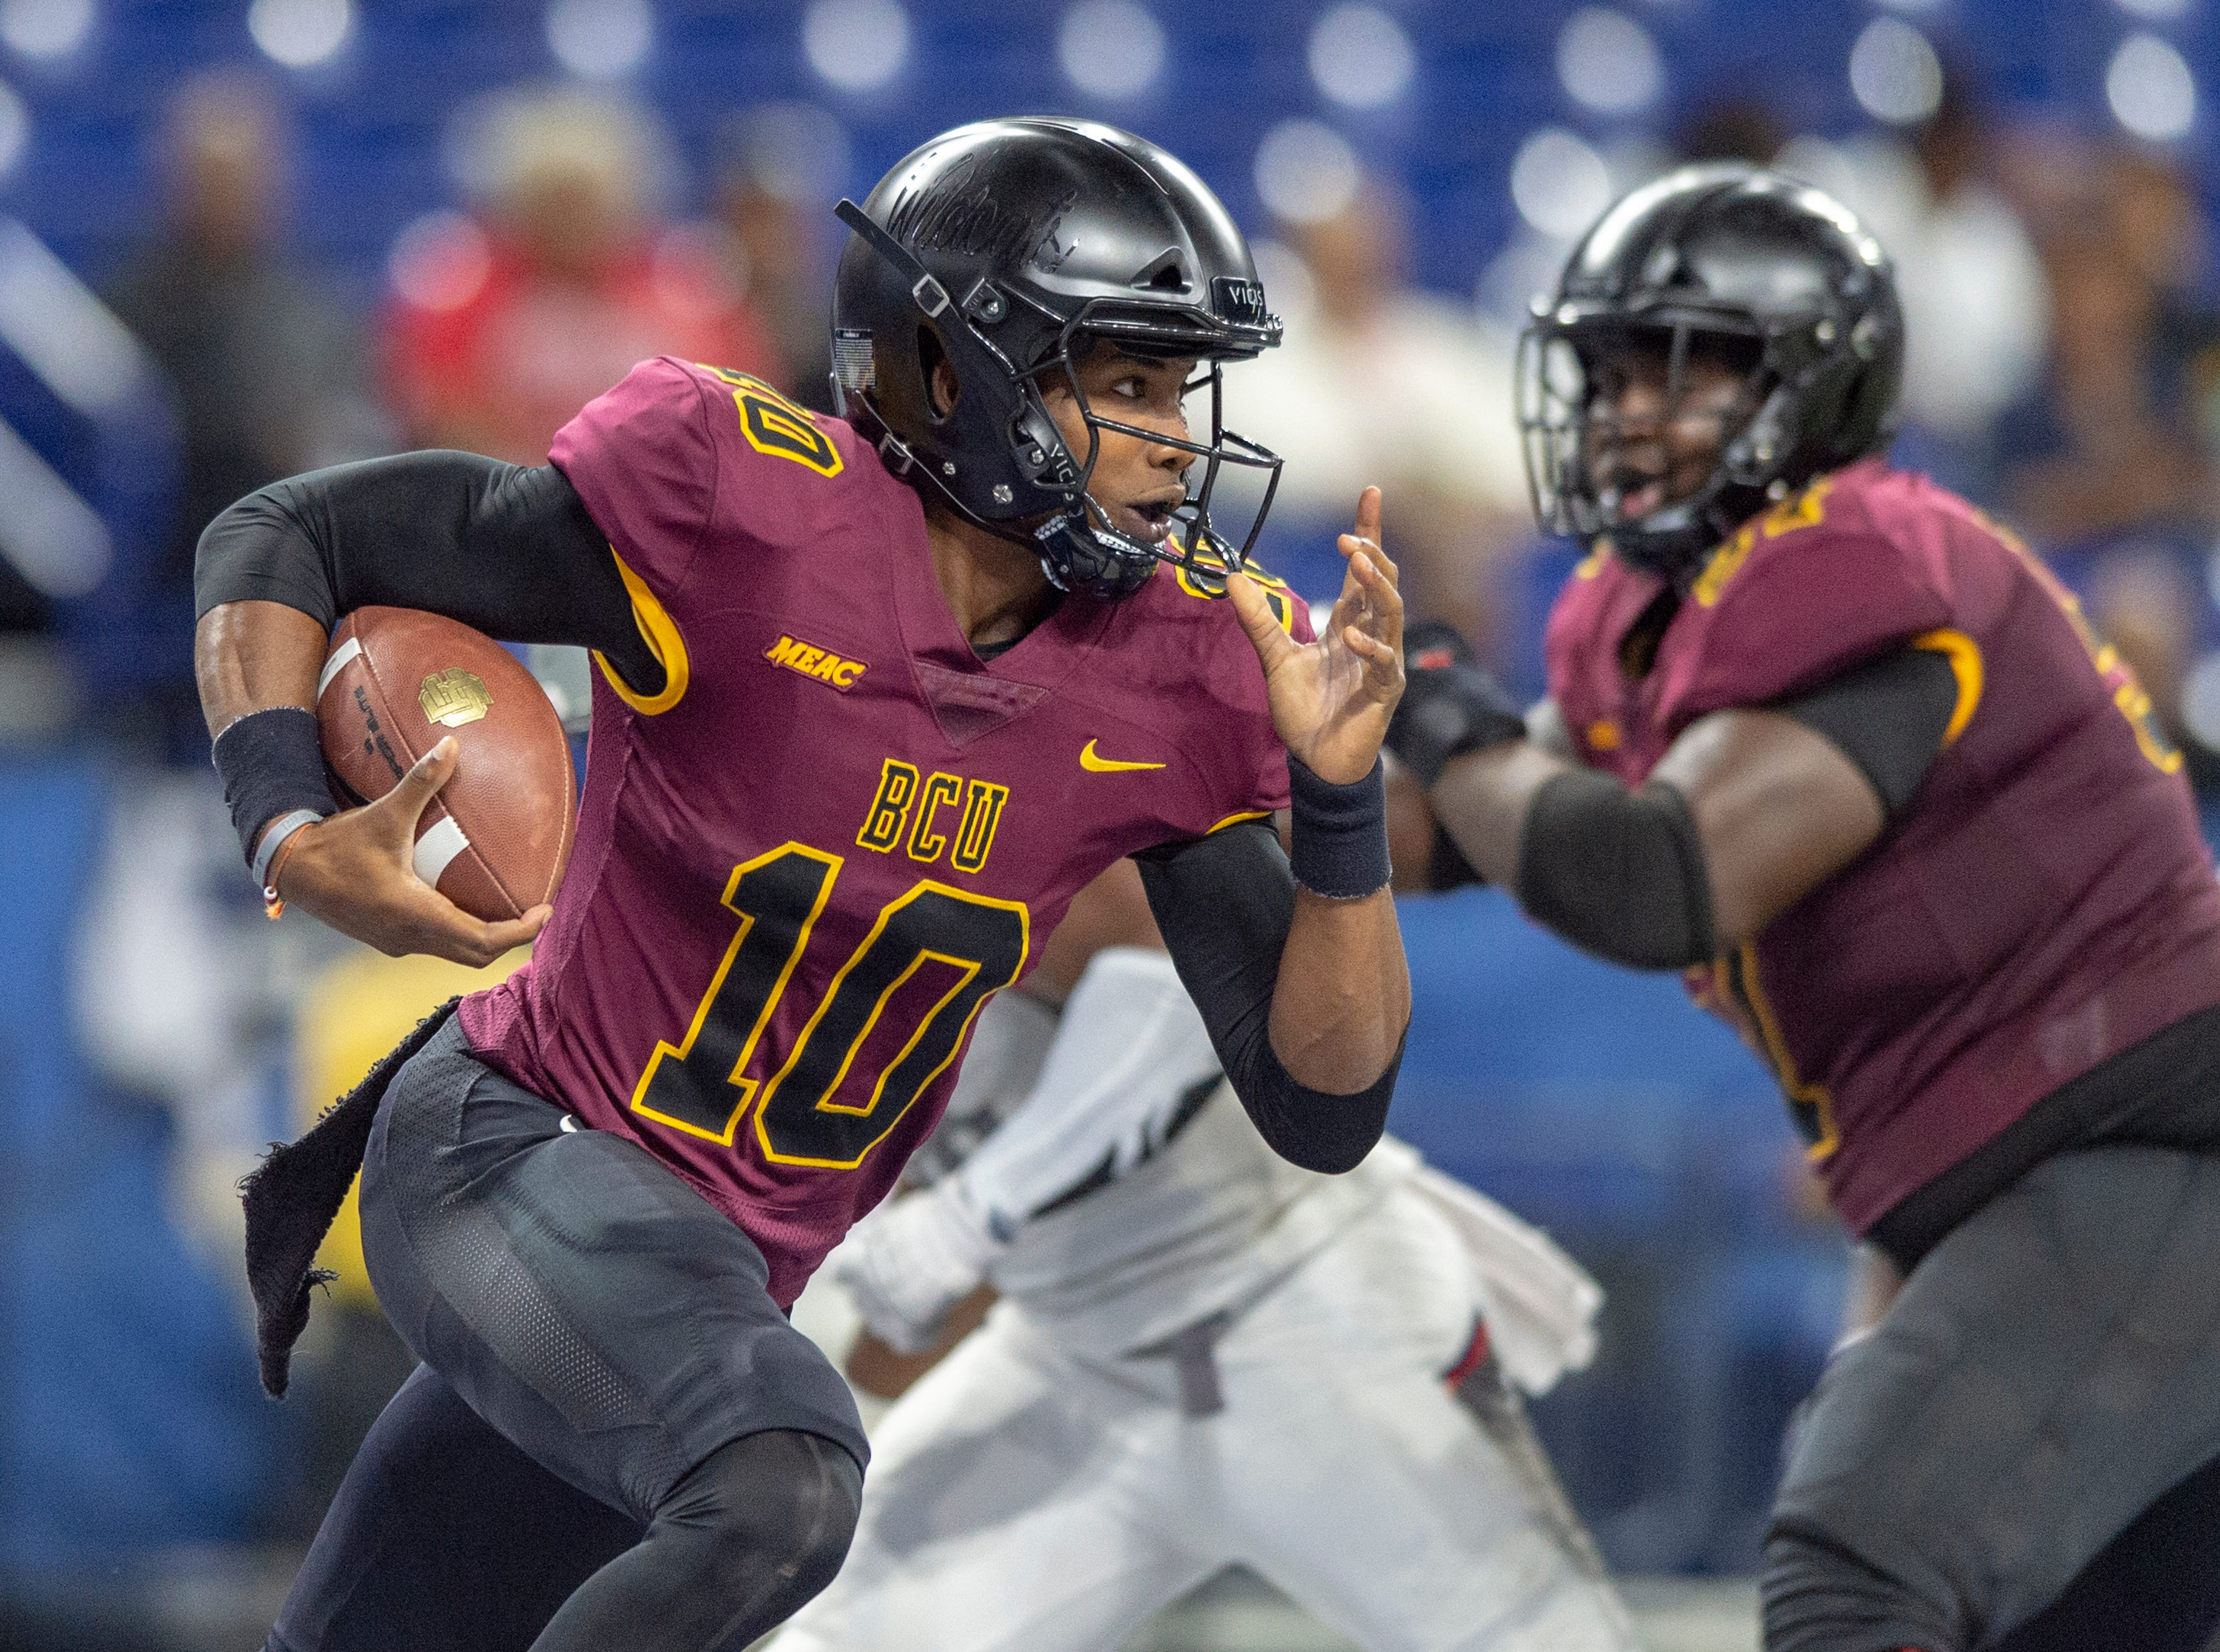 Bethune Cookman Wildcats quarterback Akevious Williams (10) rushes the ball out of the backfield during the first half of action. Howard Bison took on Bethune Cookman Wildcats in the Circle City Classic game, Saturday, Sept. 22, 2018, at Lucas Oil Stadium.